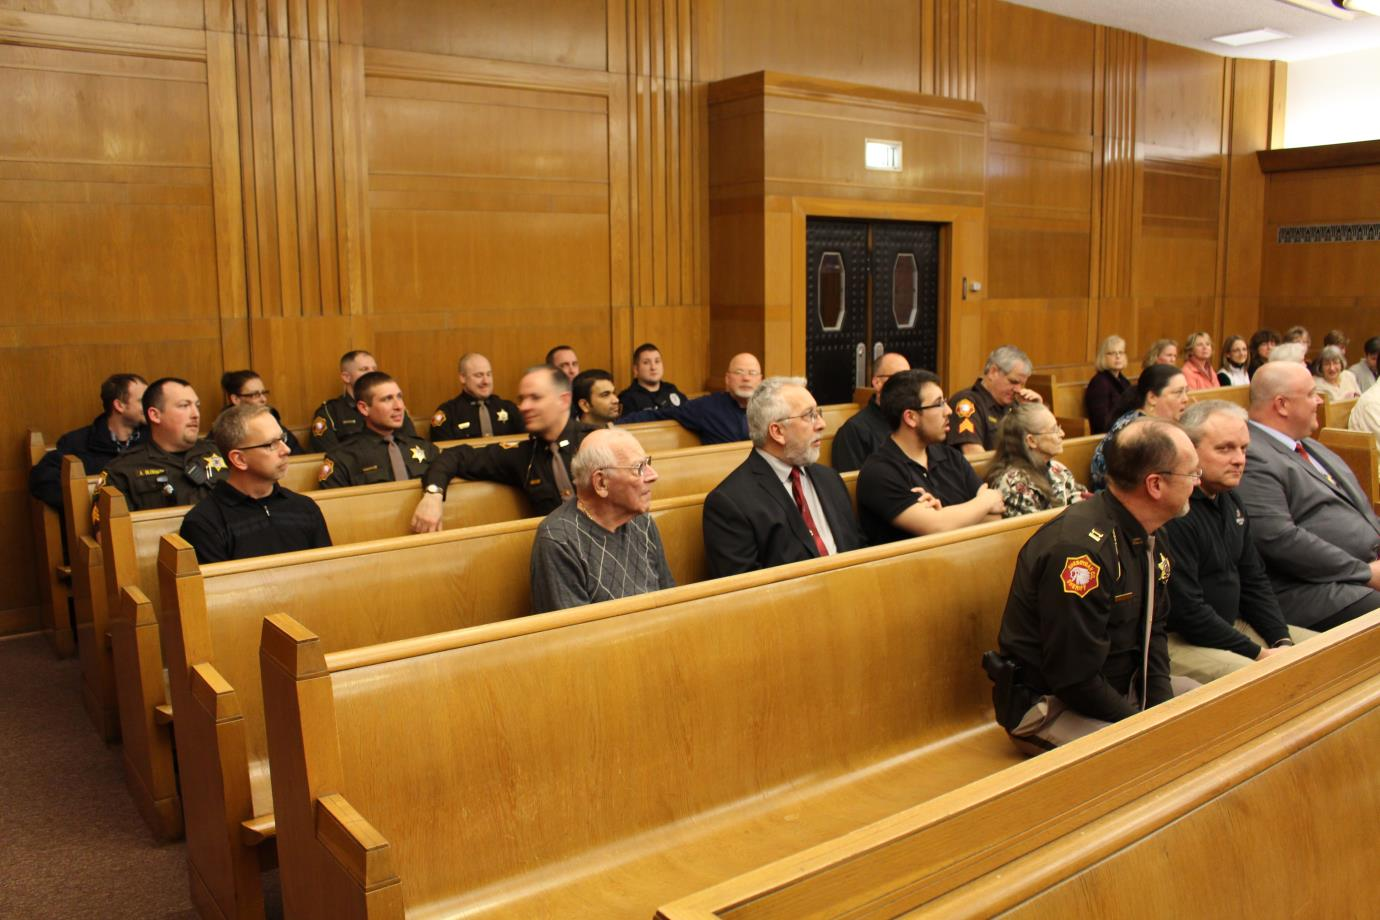 Courtroom seats filled with officers and other attendees